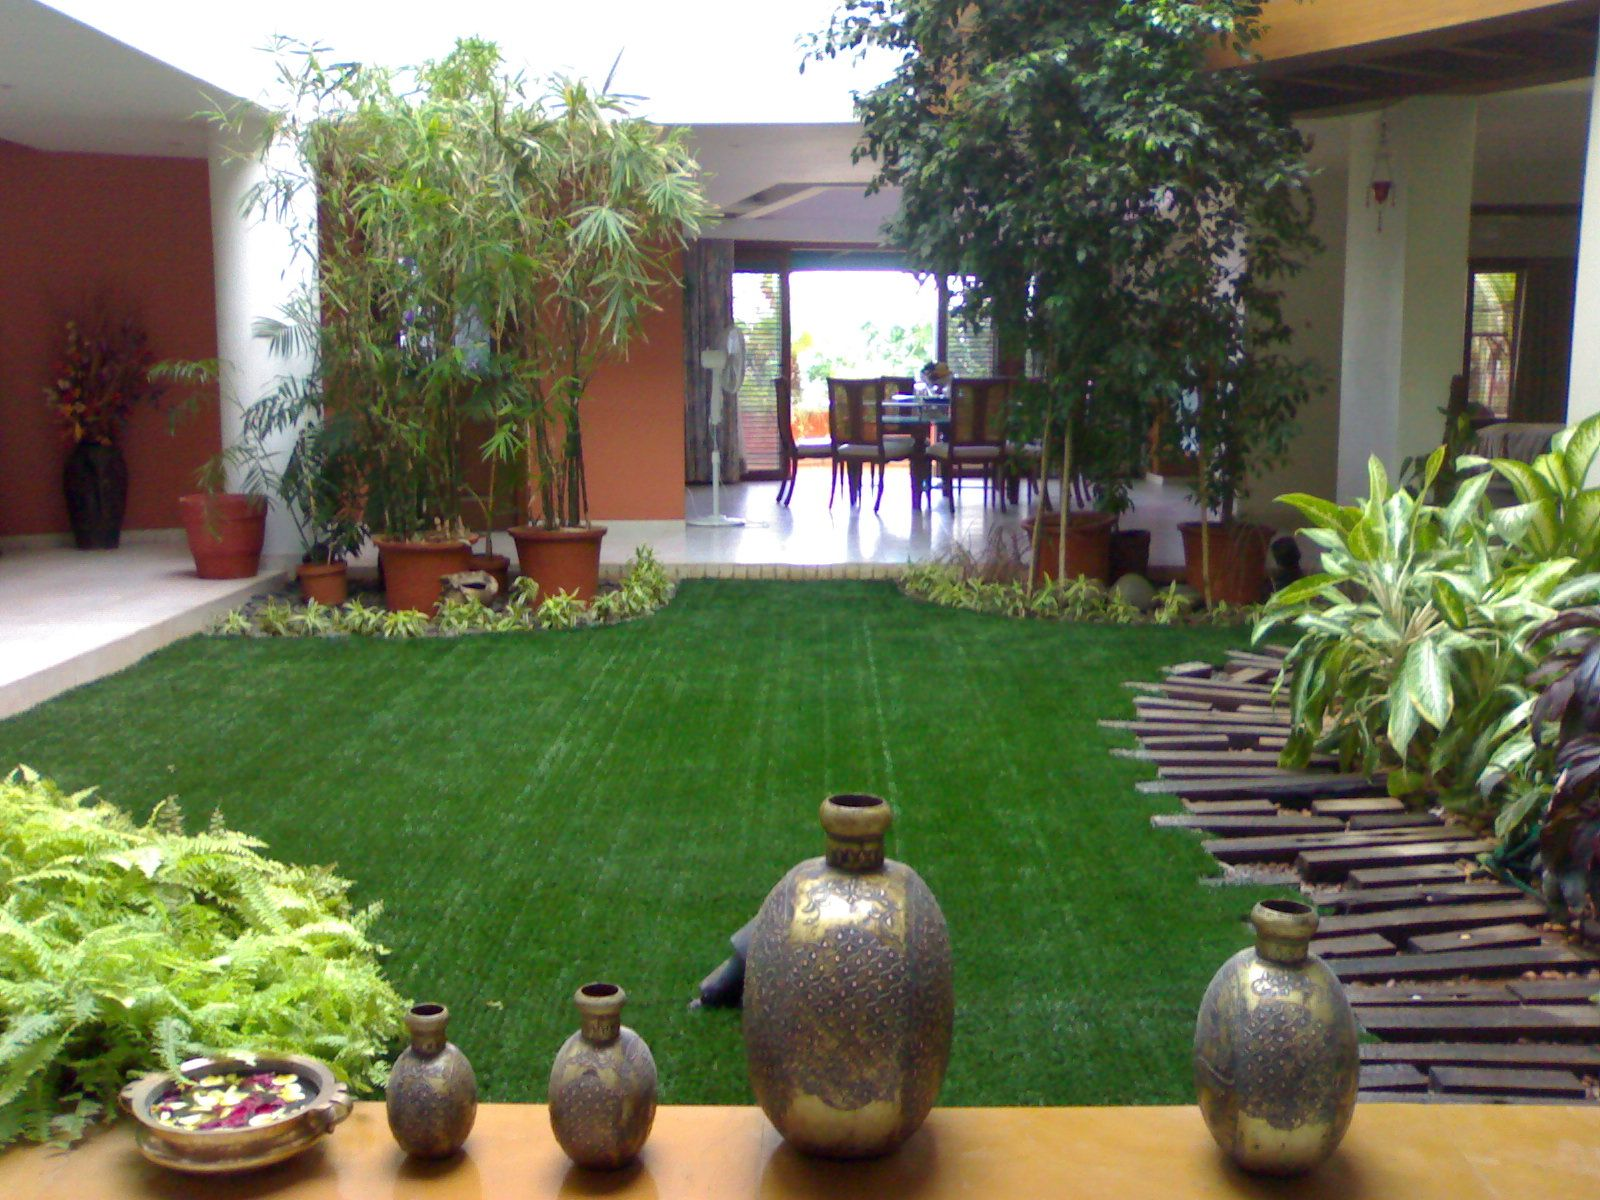 A Beautiful Garden Adorned By Our Artificial Grass Inside A House In Hyderabad India See More Such Garden Ideas India Indian Garden Artificial Grass Balcony